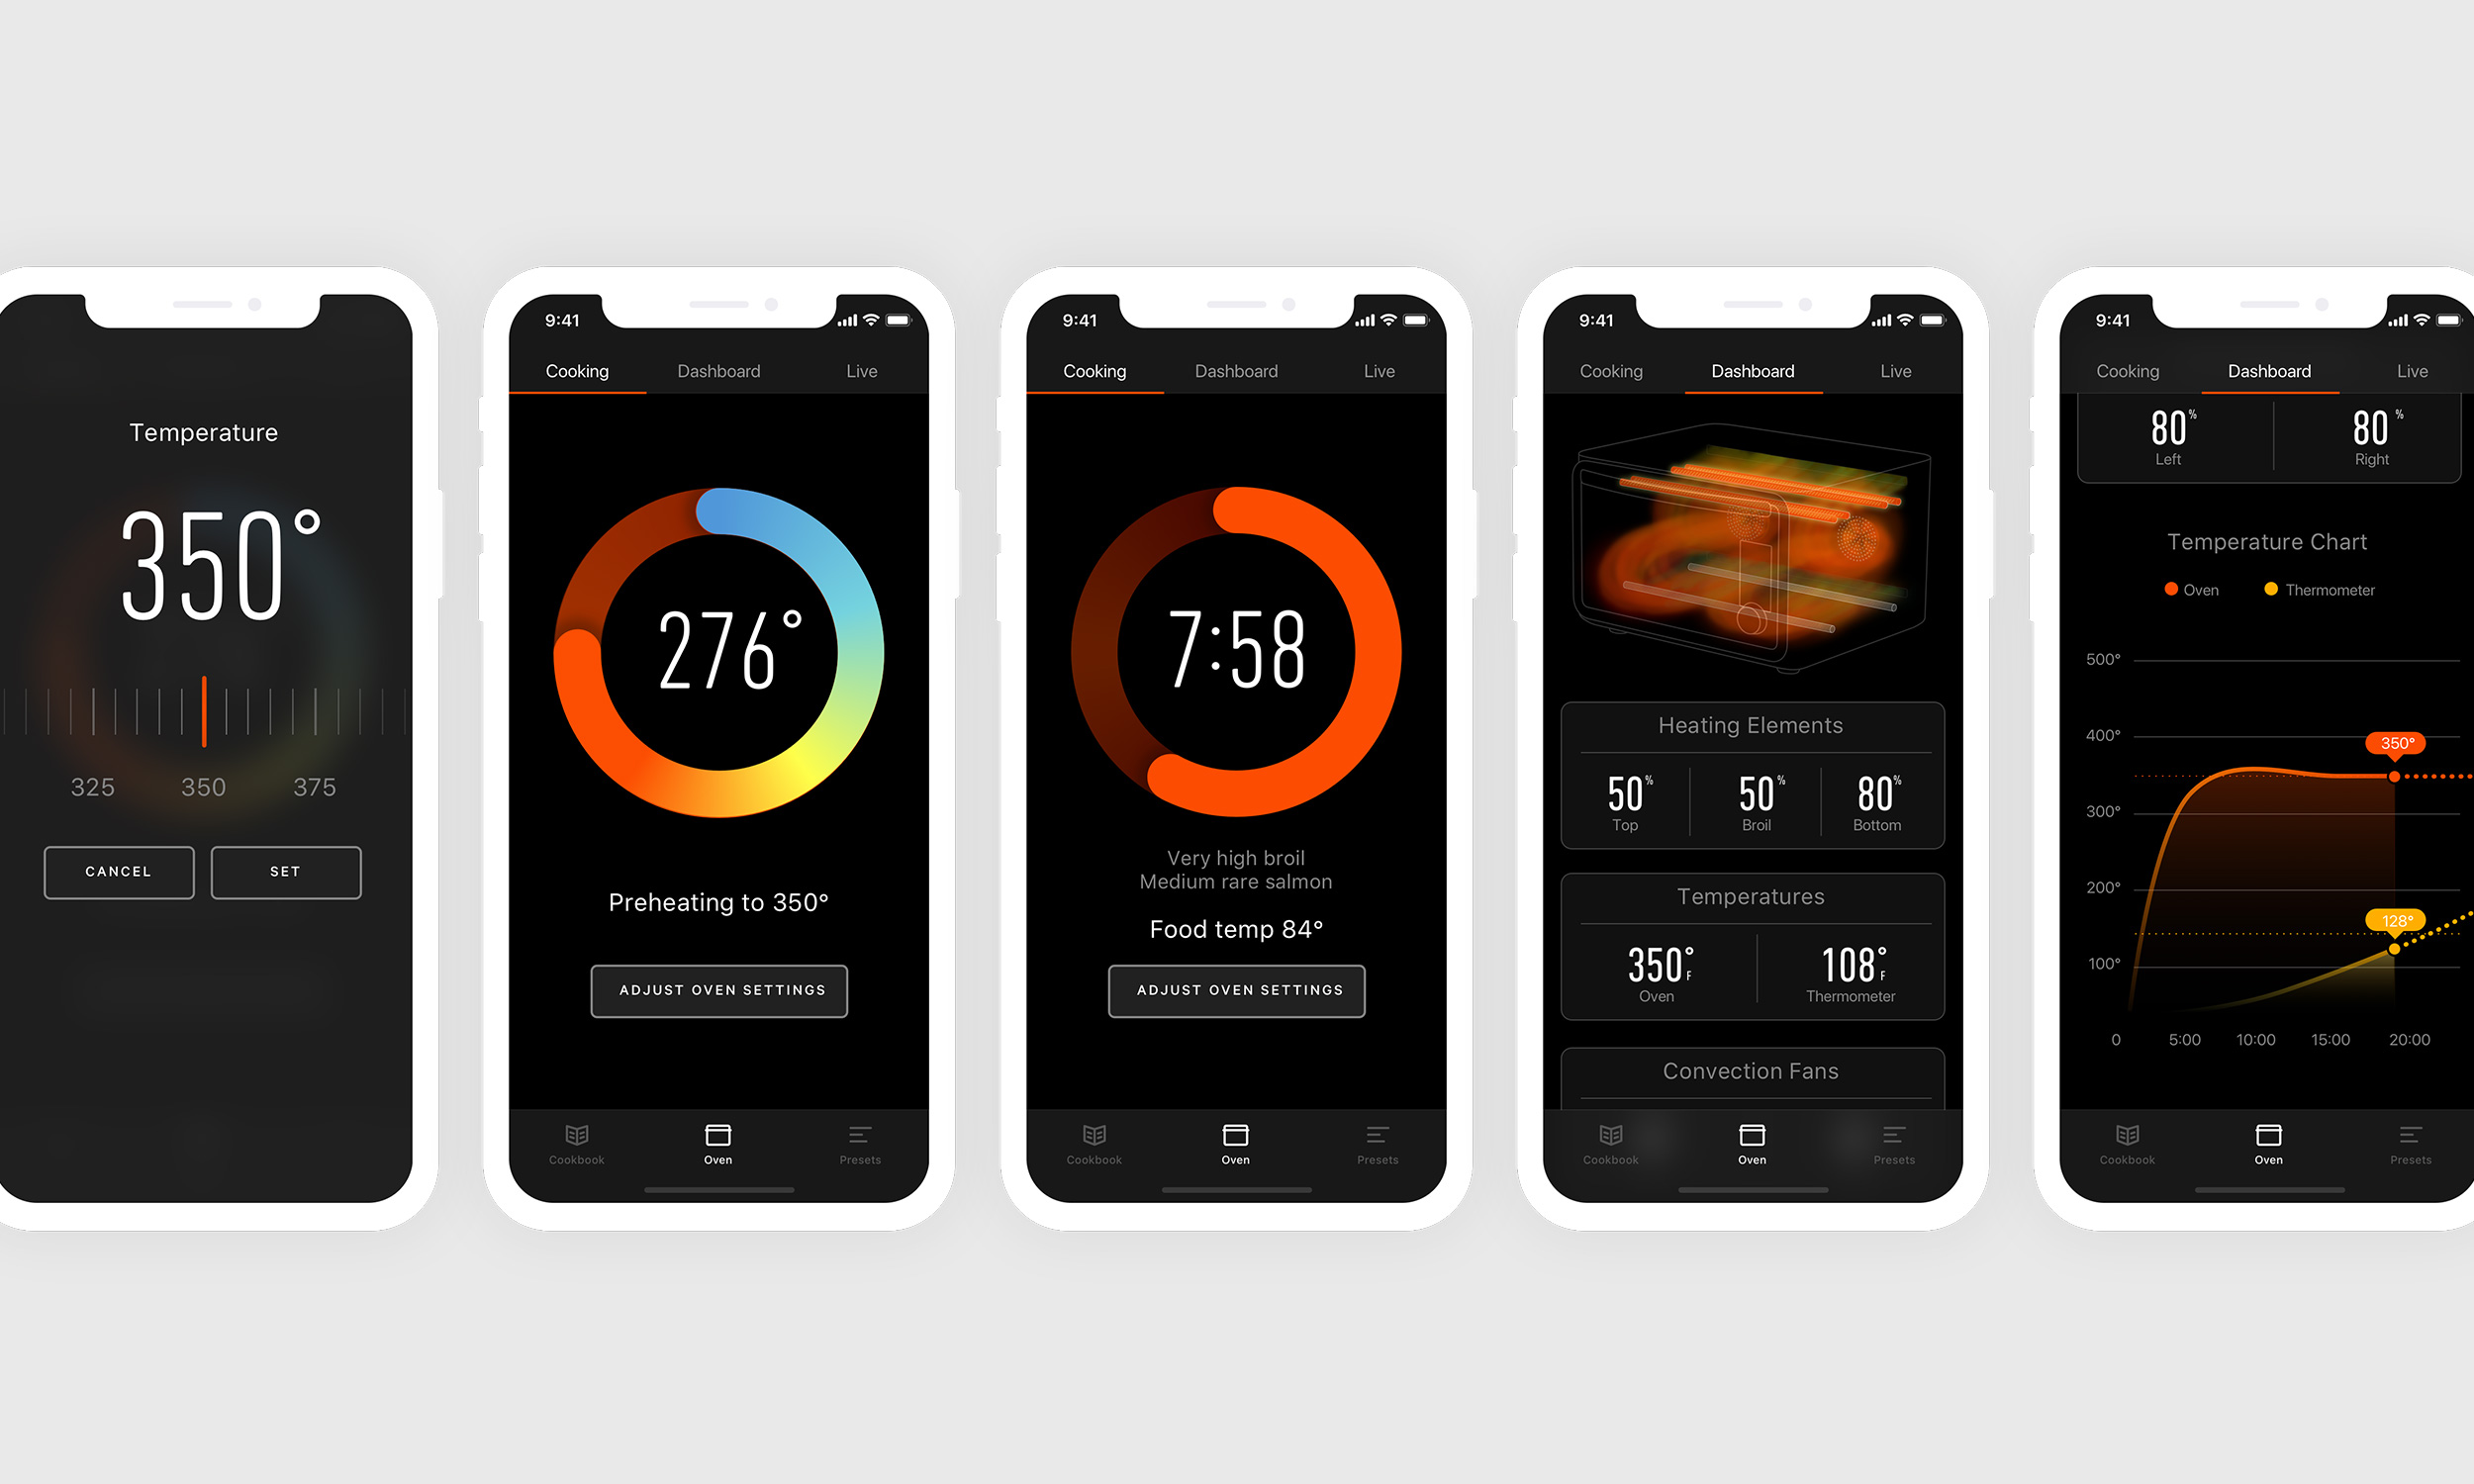 The June app gives you loads of info about your current cook progress